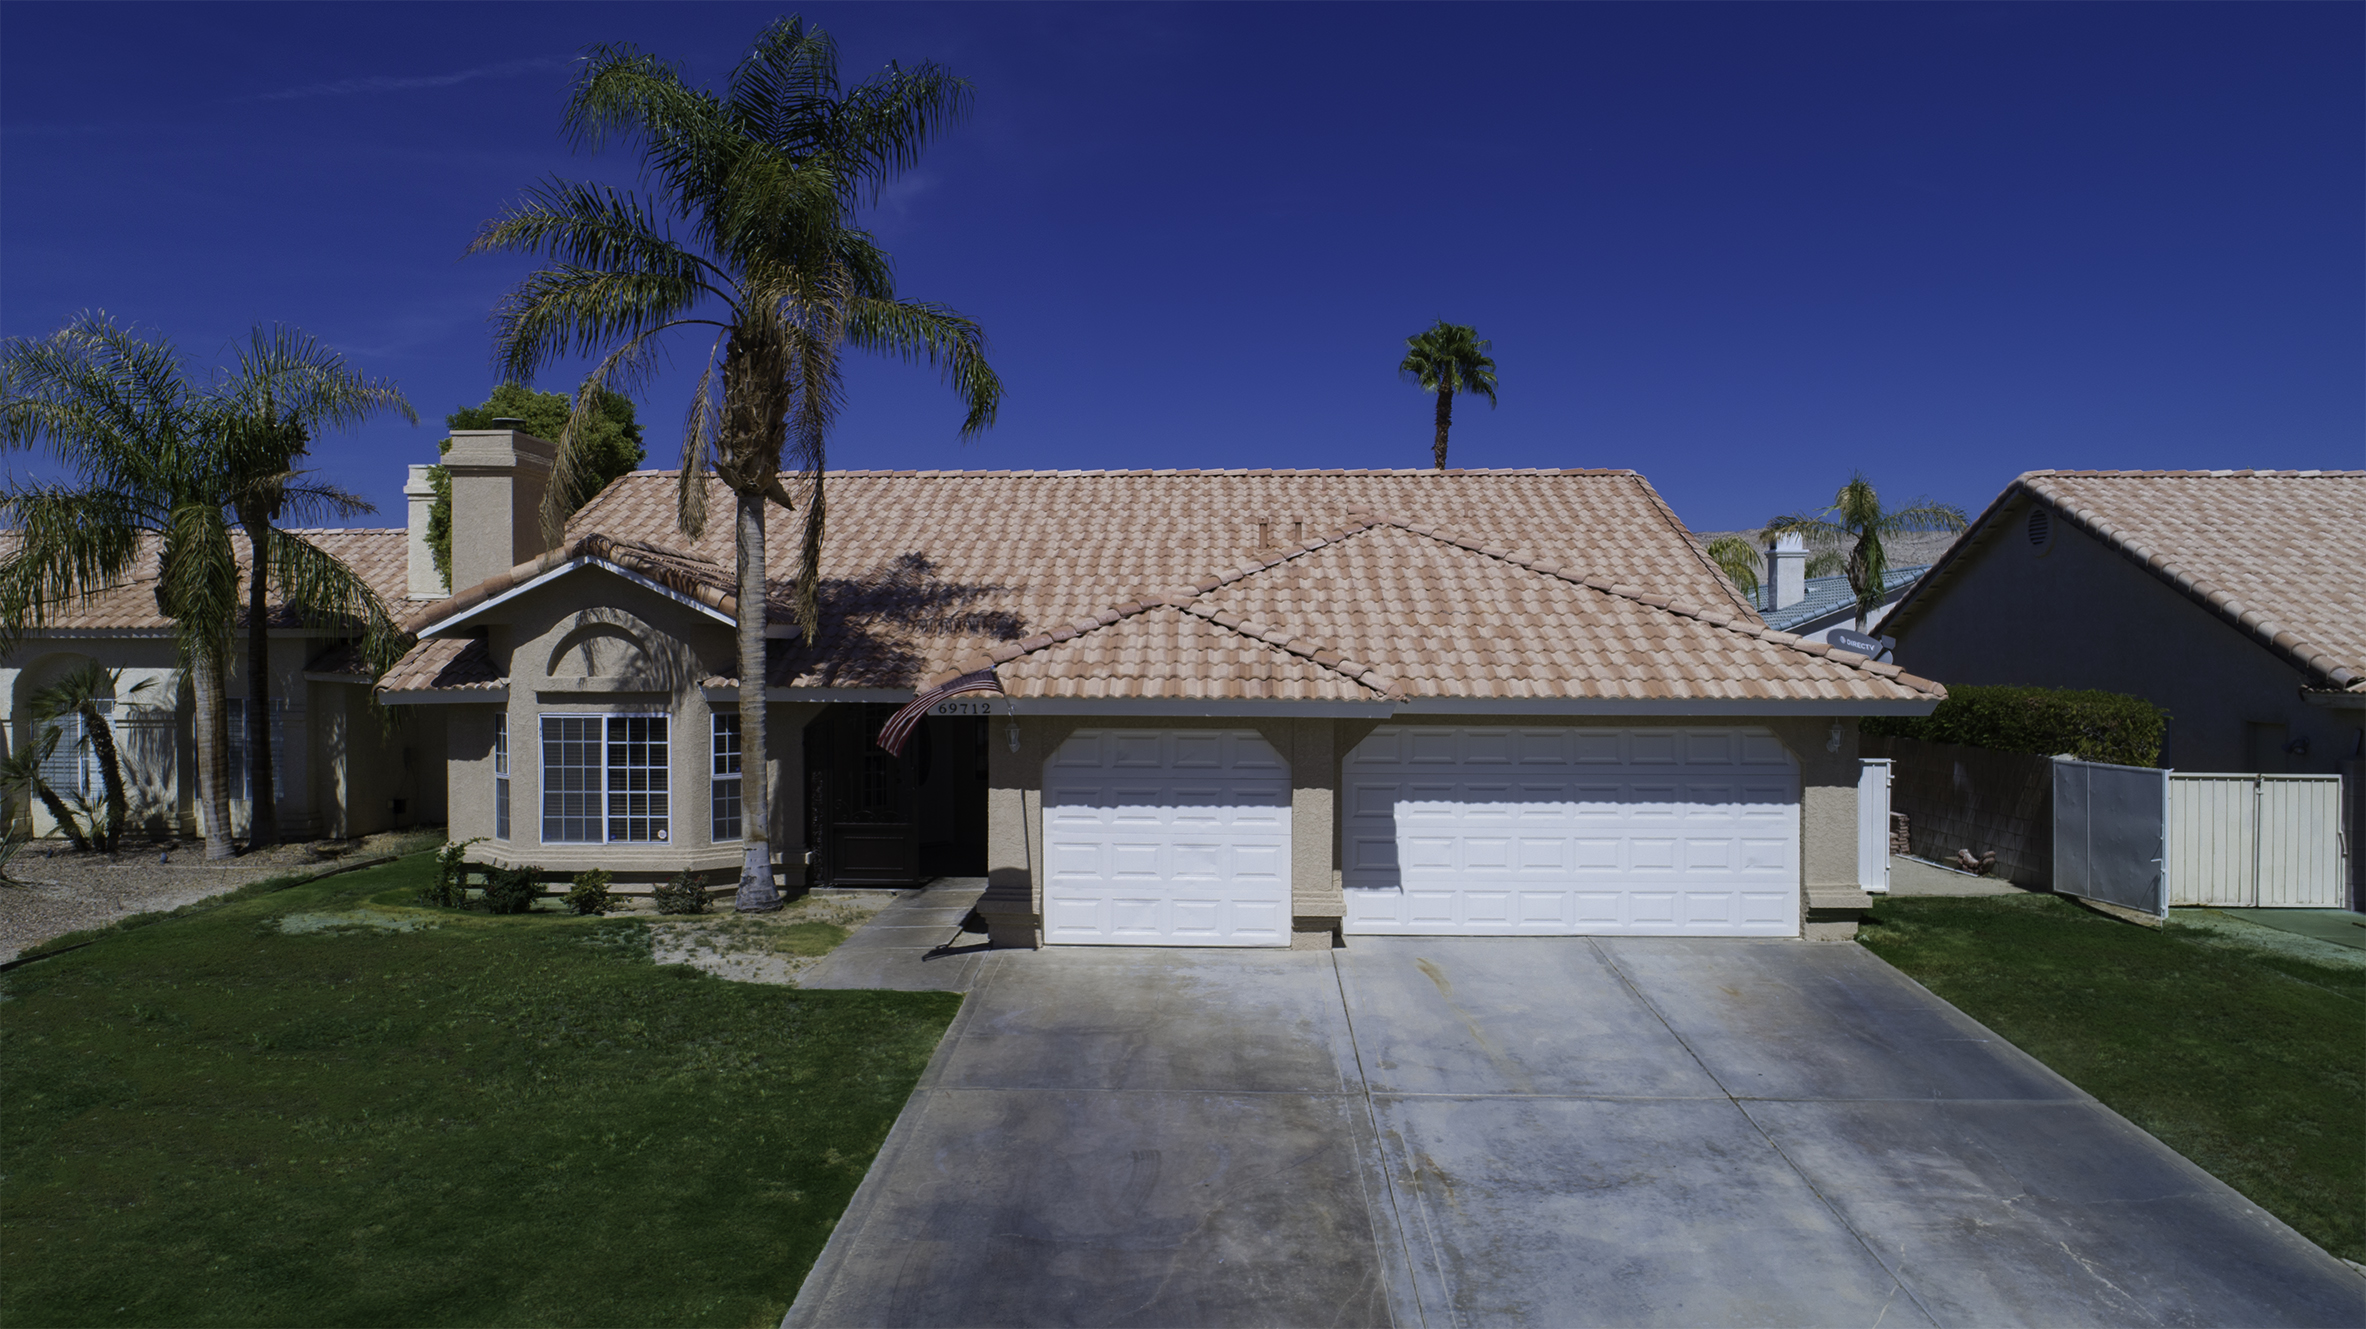 69712 Willow Lane, Cathedral City, CA 92234